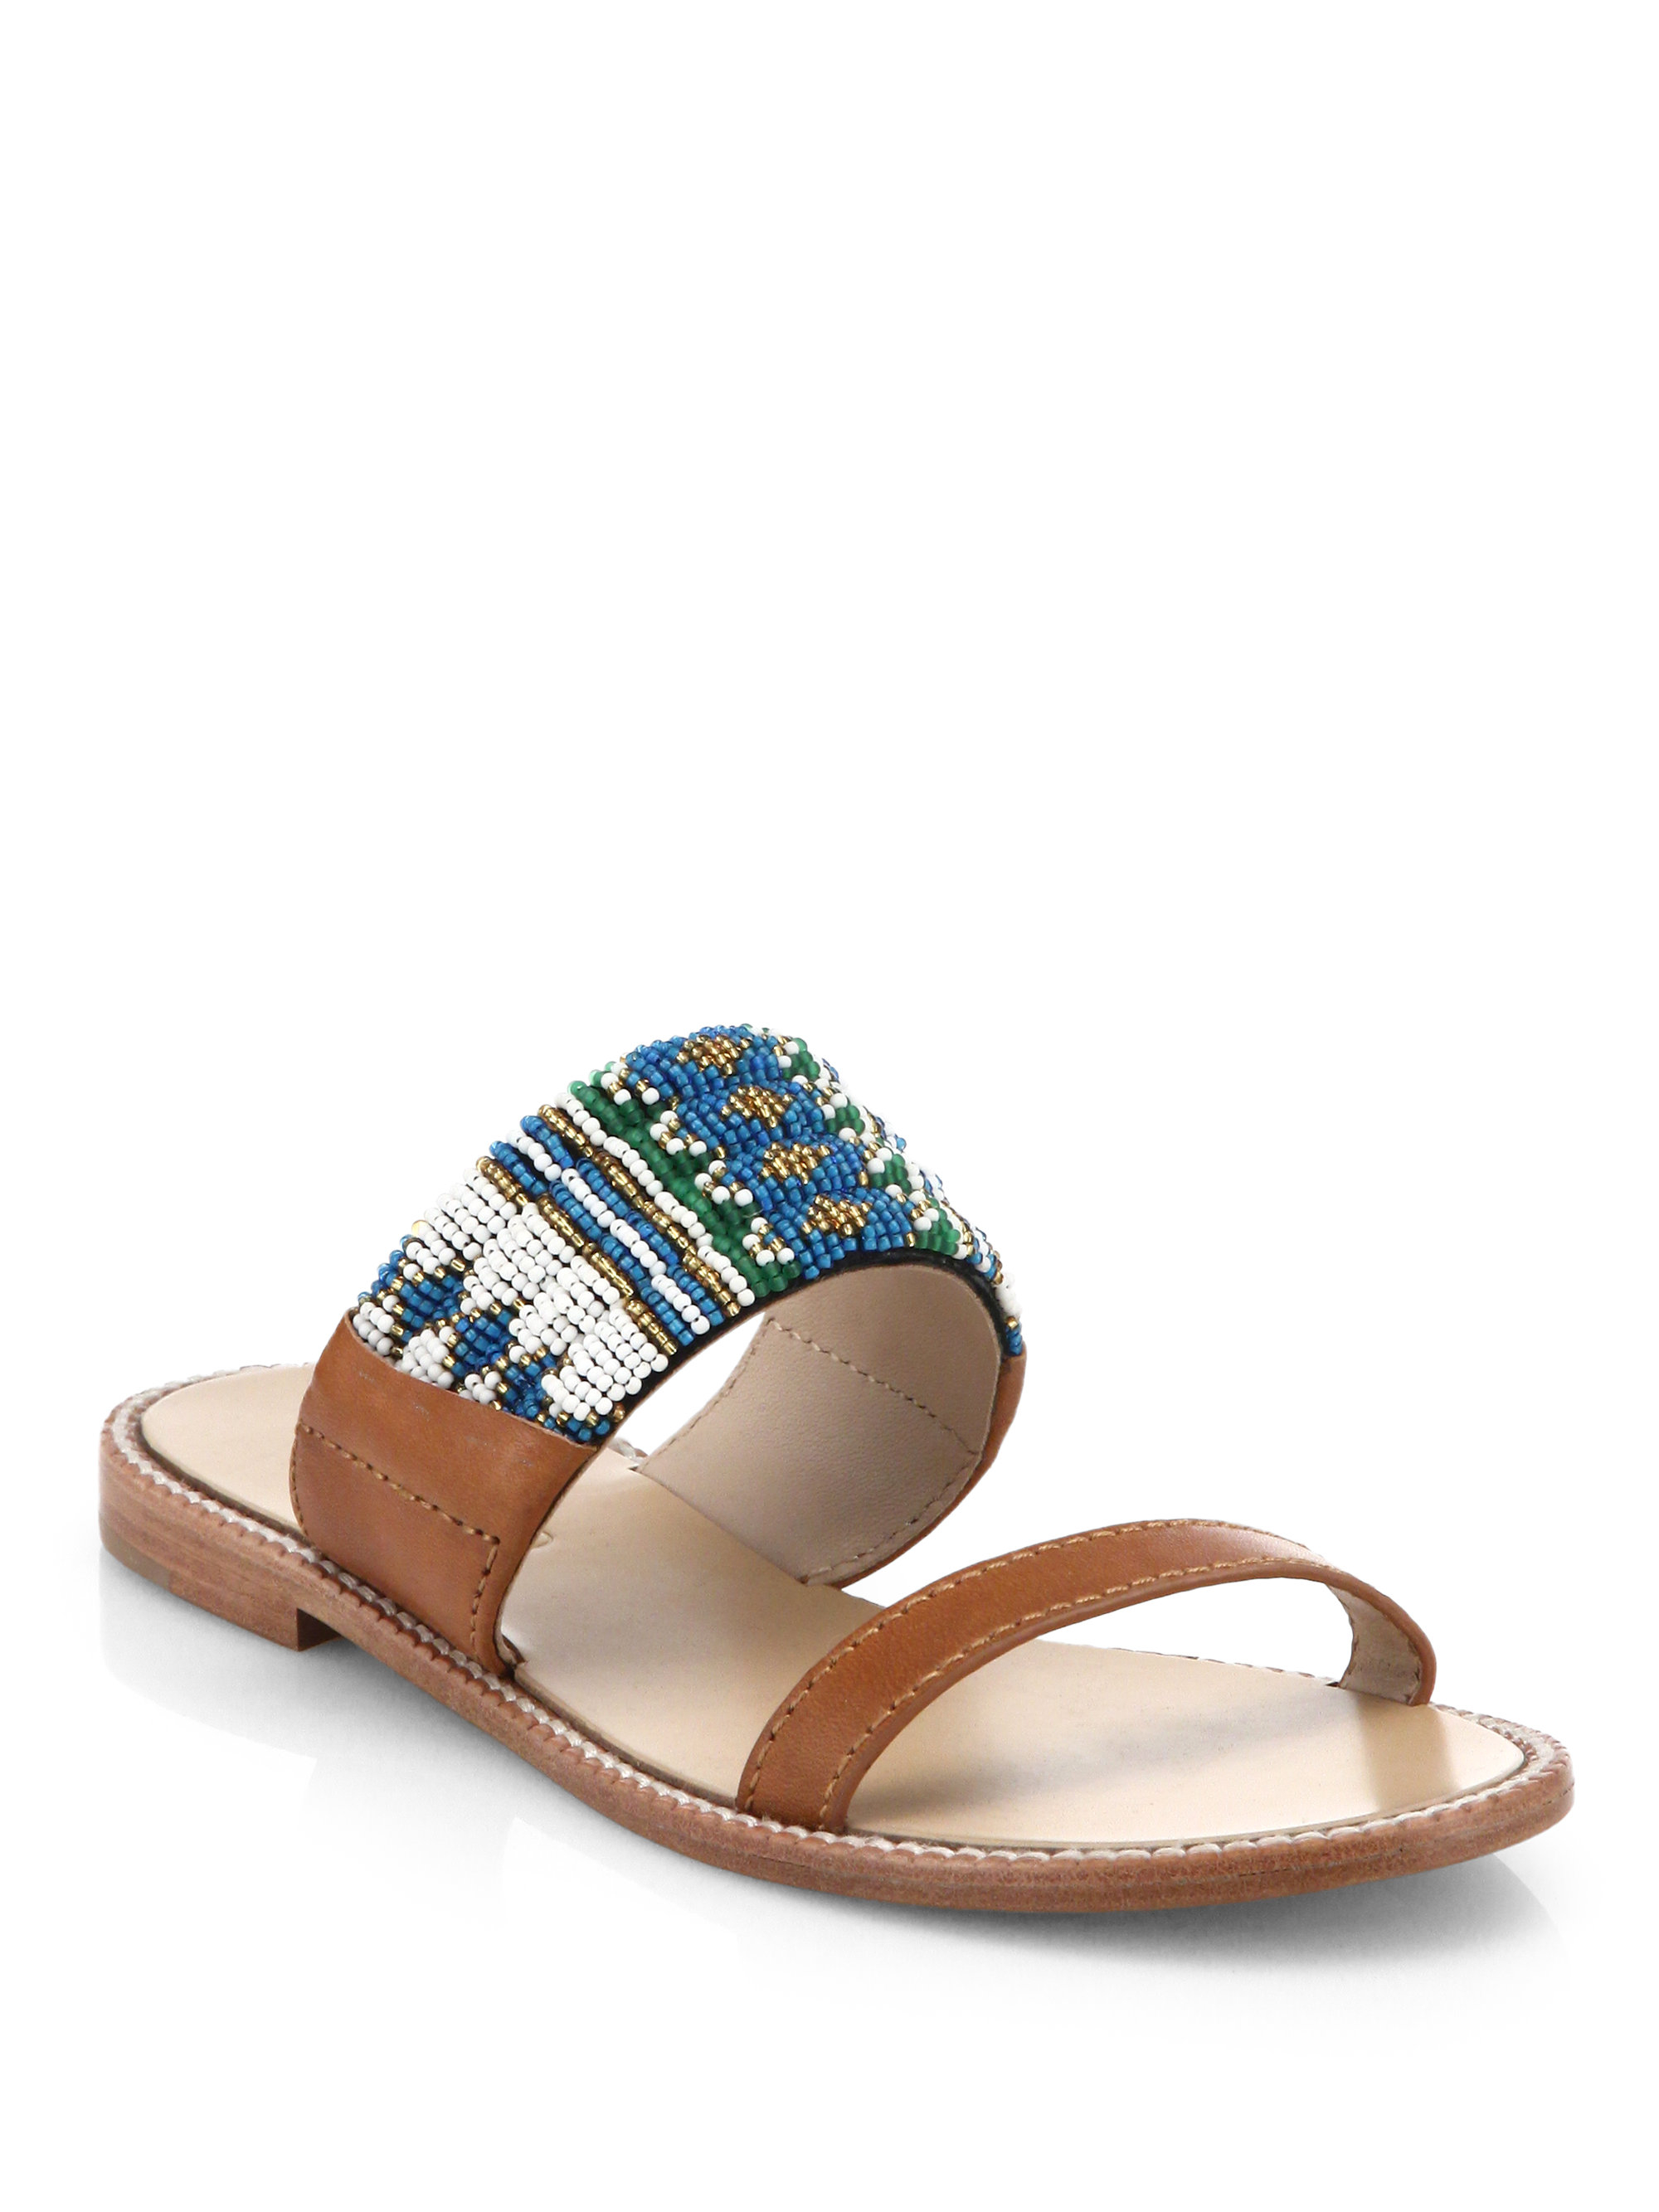 outlet order online Dannijo Beaded Slide Sandals clearance best seller free shipping cheapest price buy cheap best wholesale 9Qc9I